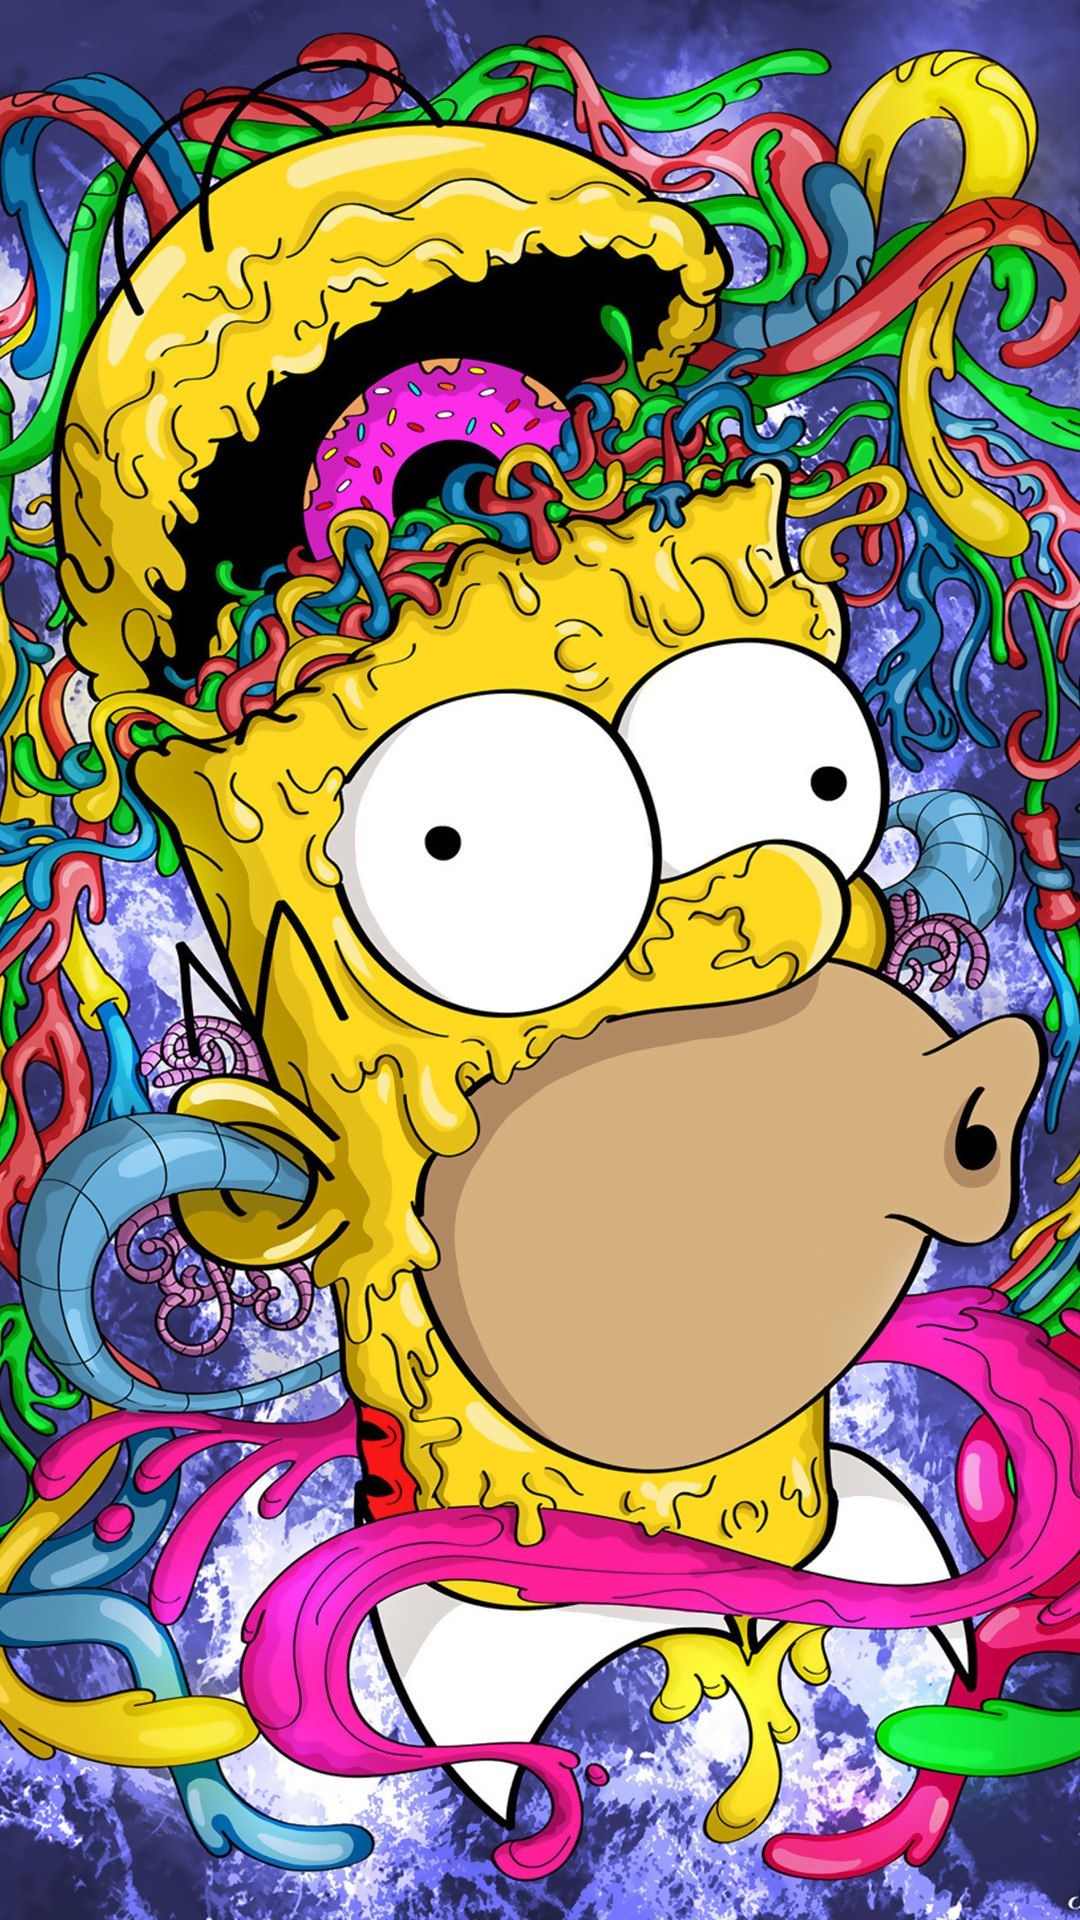 20 Iphone Wallpapers Hd Quality Free Download Cartoon Wallpaper Iphone Simpson Wallpaper Iphone Simpsons Art